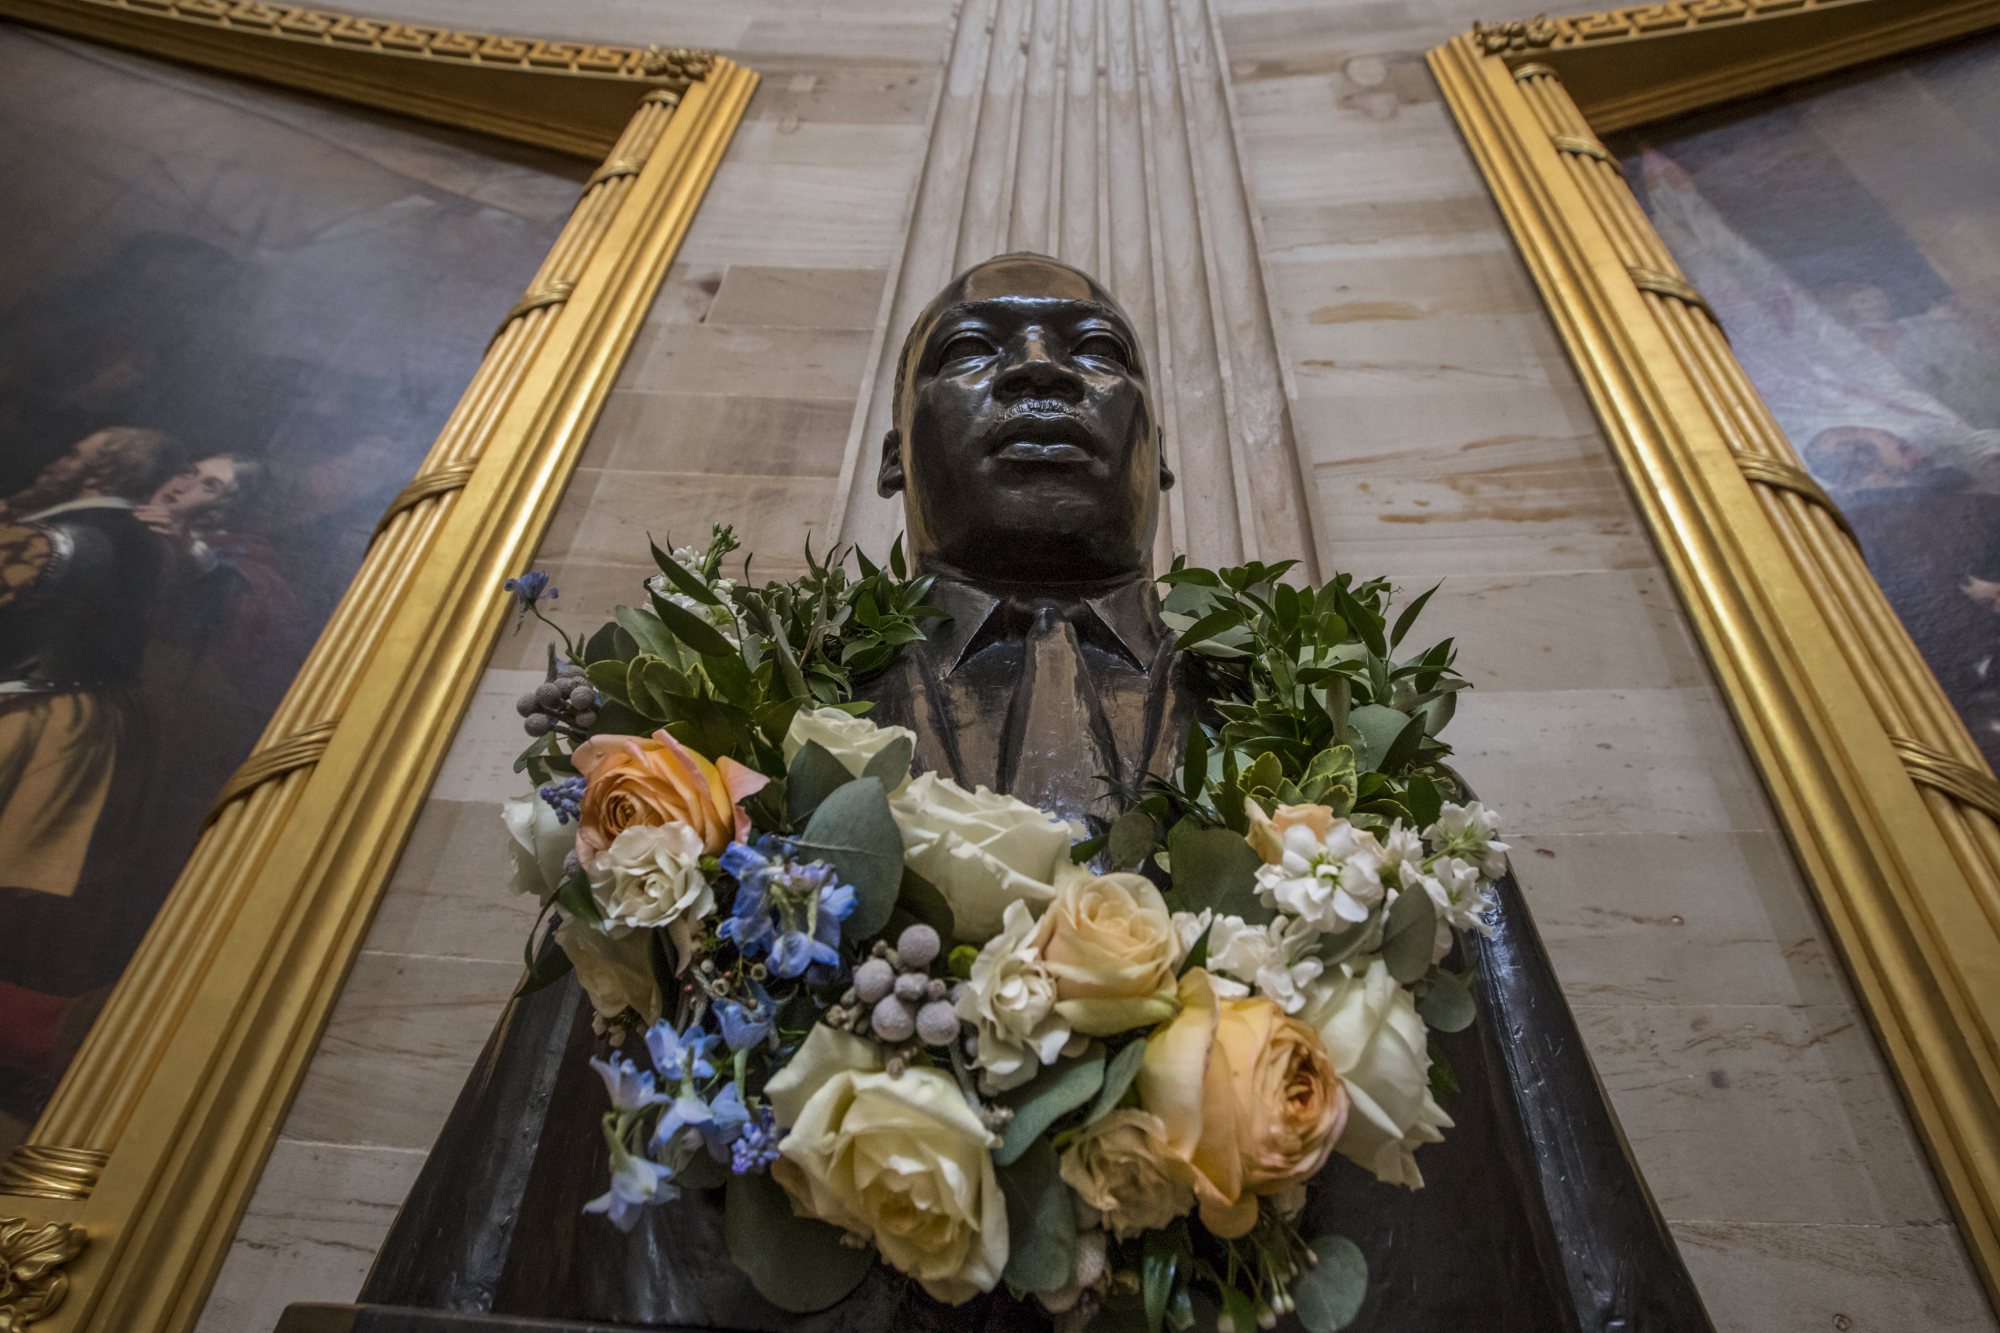 Towering figure: A statue of Martin Luther King Jr. in the U.S. Capitol Rotunda in Washington is adorned with flowers ahead of his birthday on Jan. 15. | AP